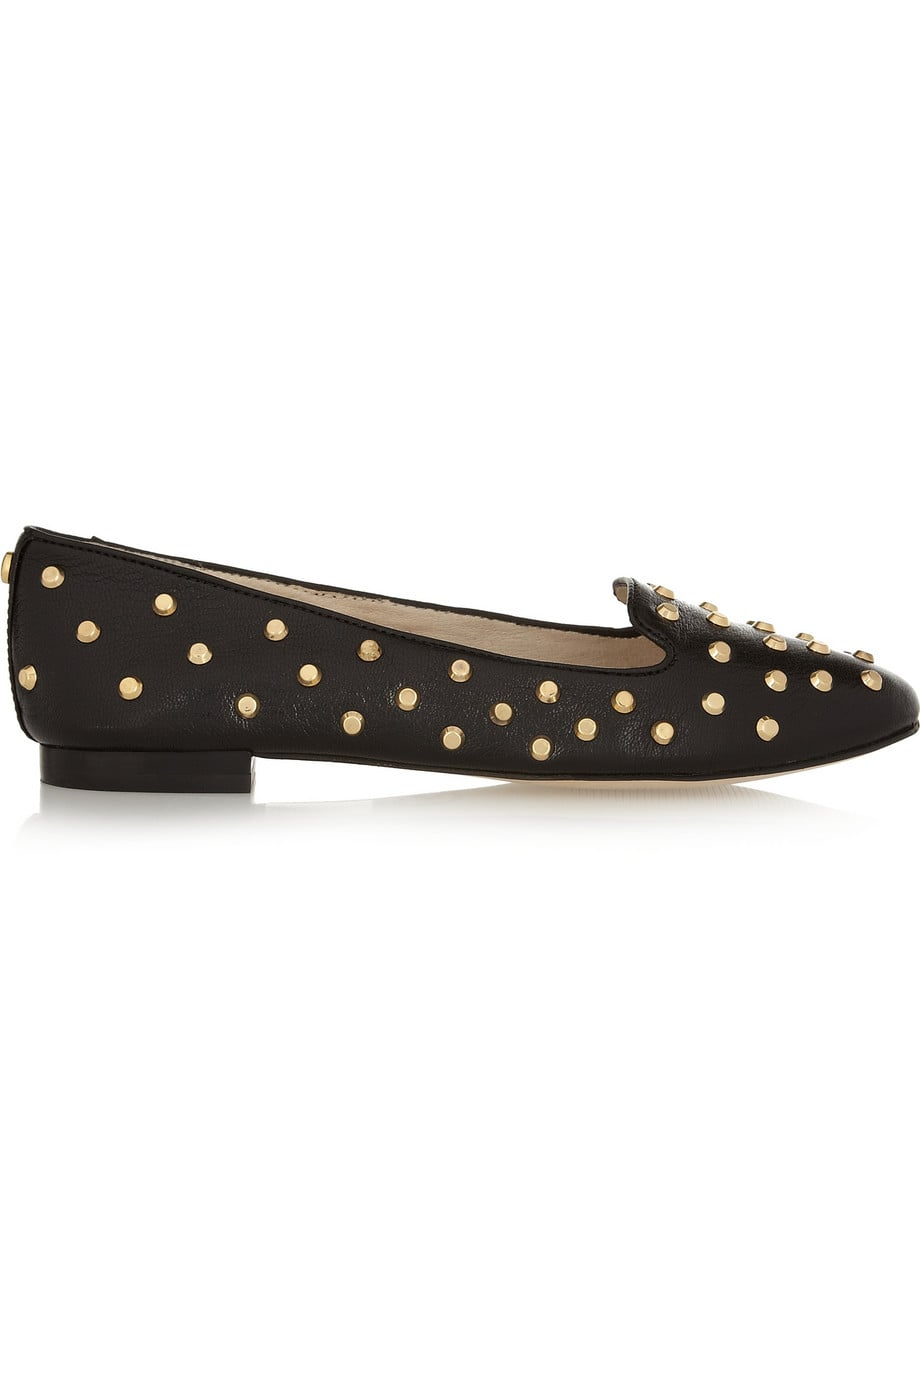 Michael Kors Ailee Studded Glossed-Leather Slippers ($99, originally $165)